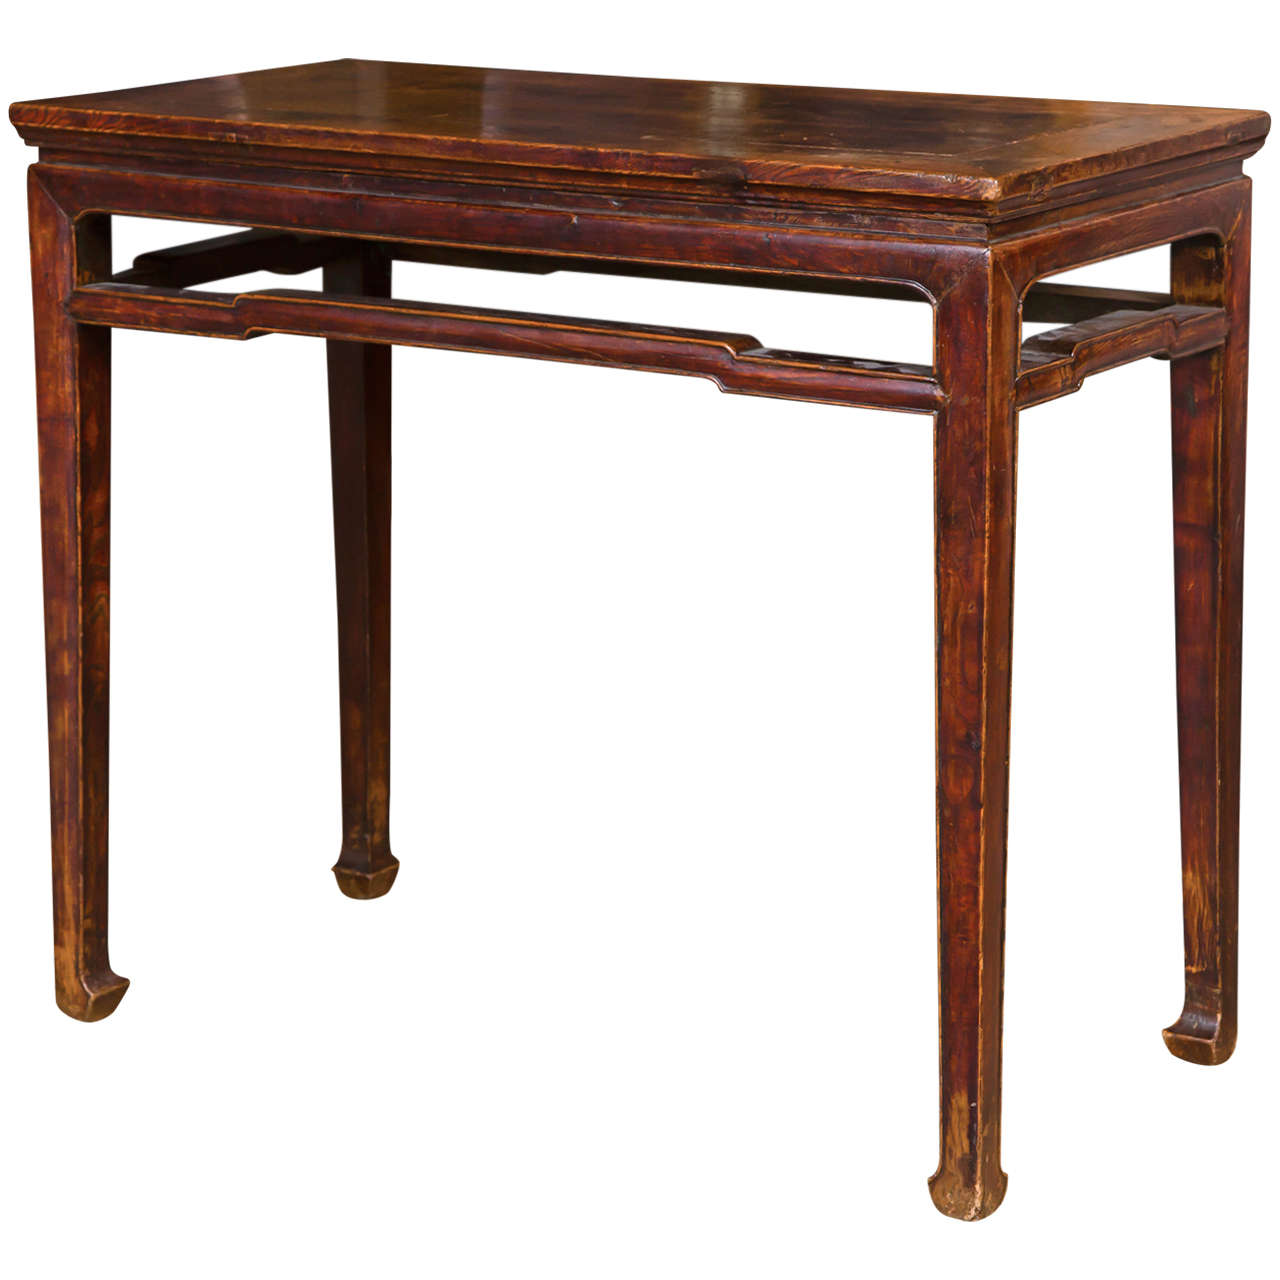 Chinese elmwood console table for sale at stdibs